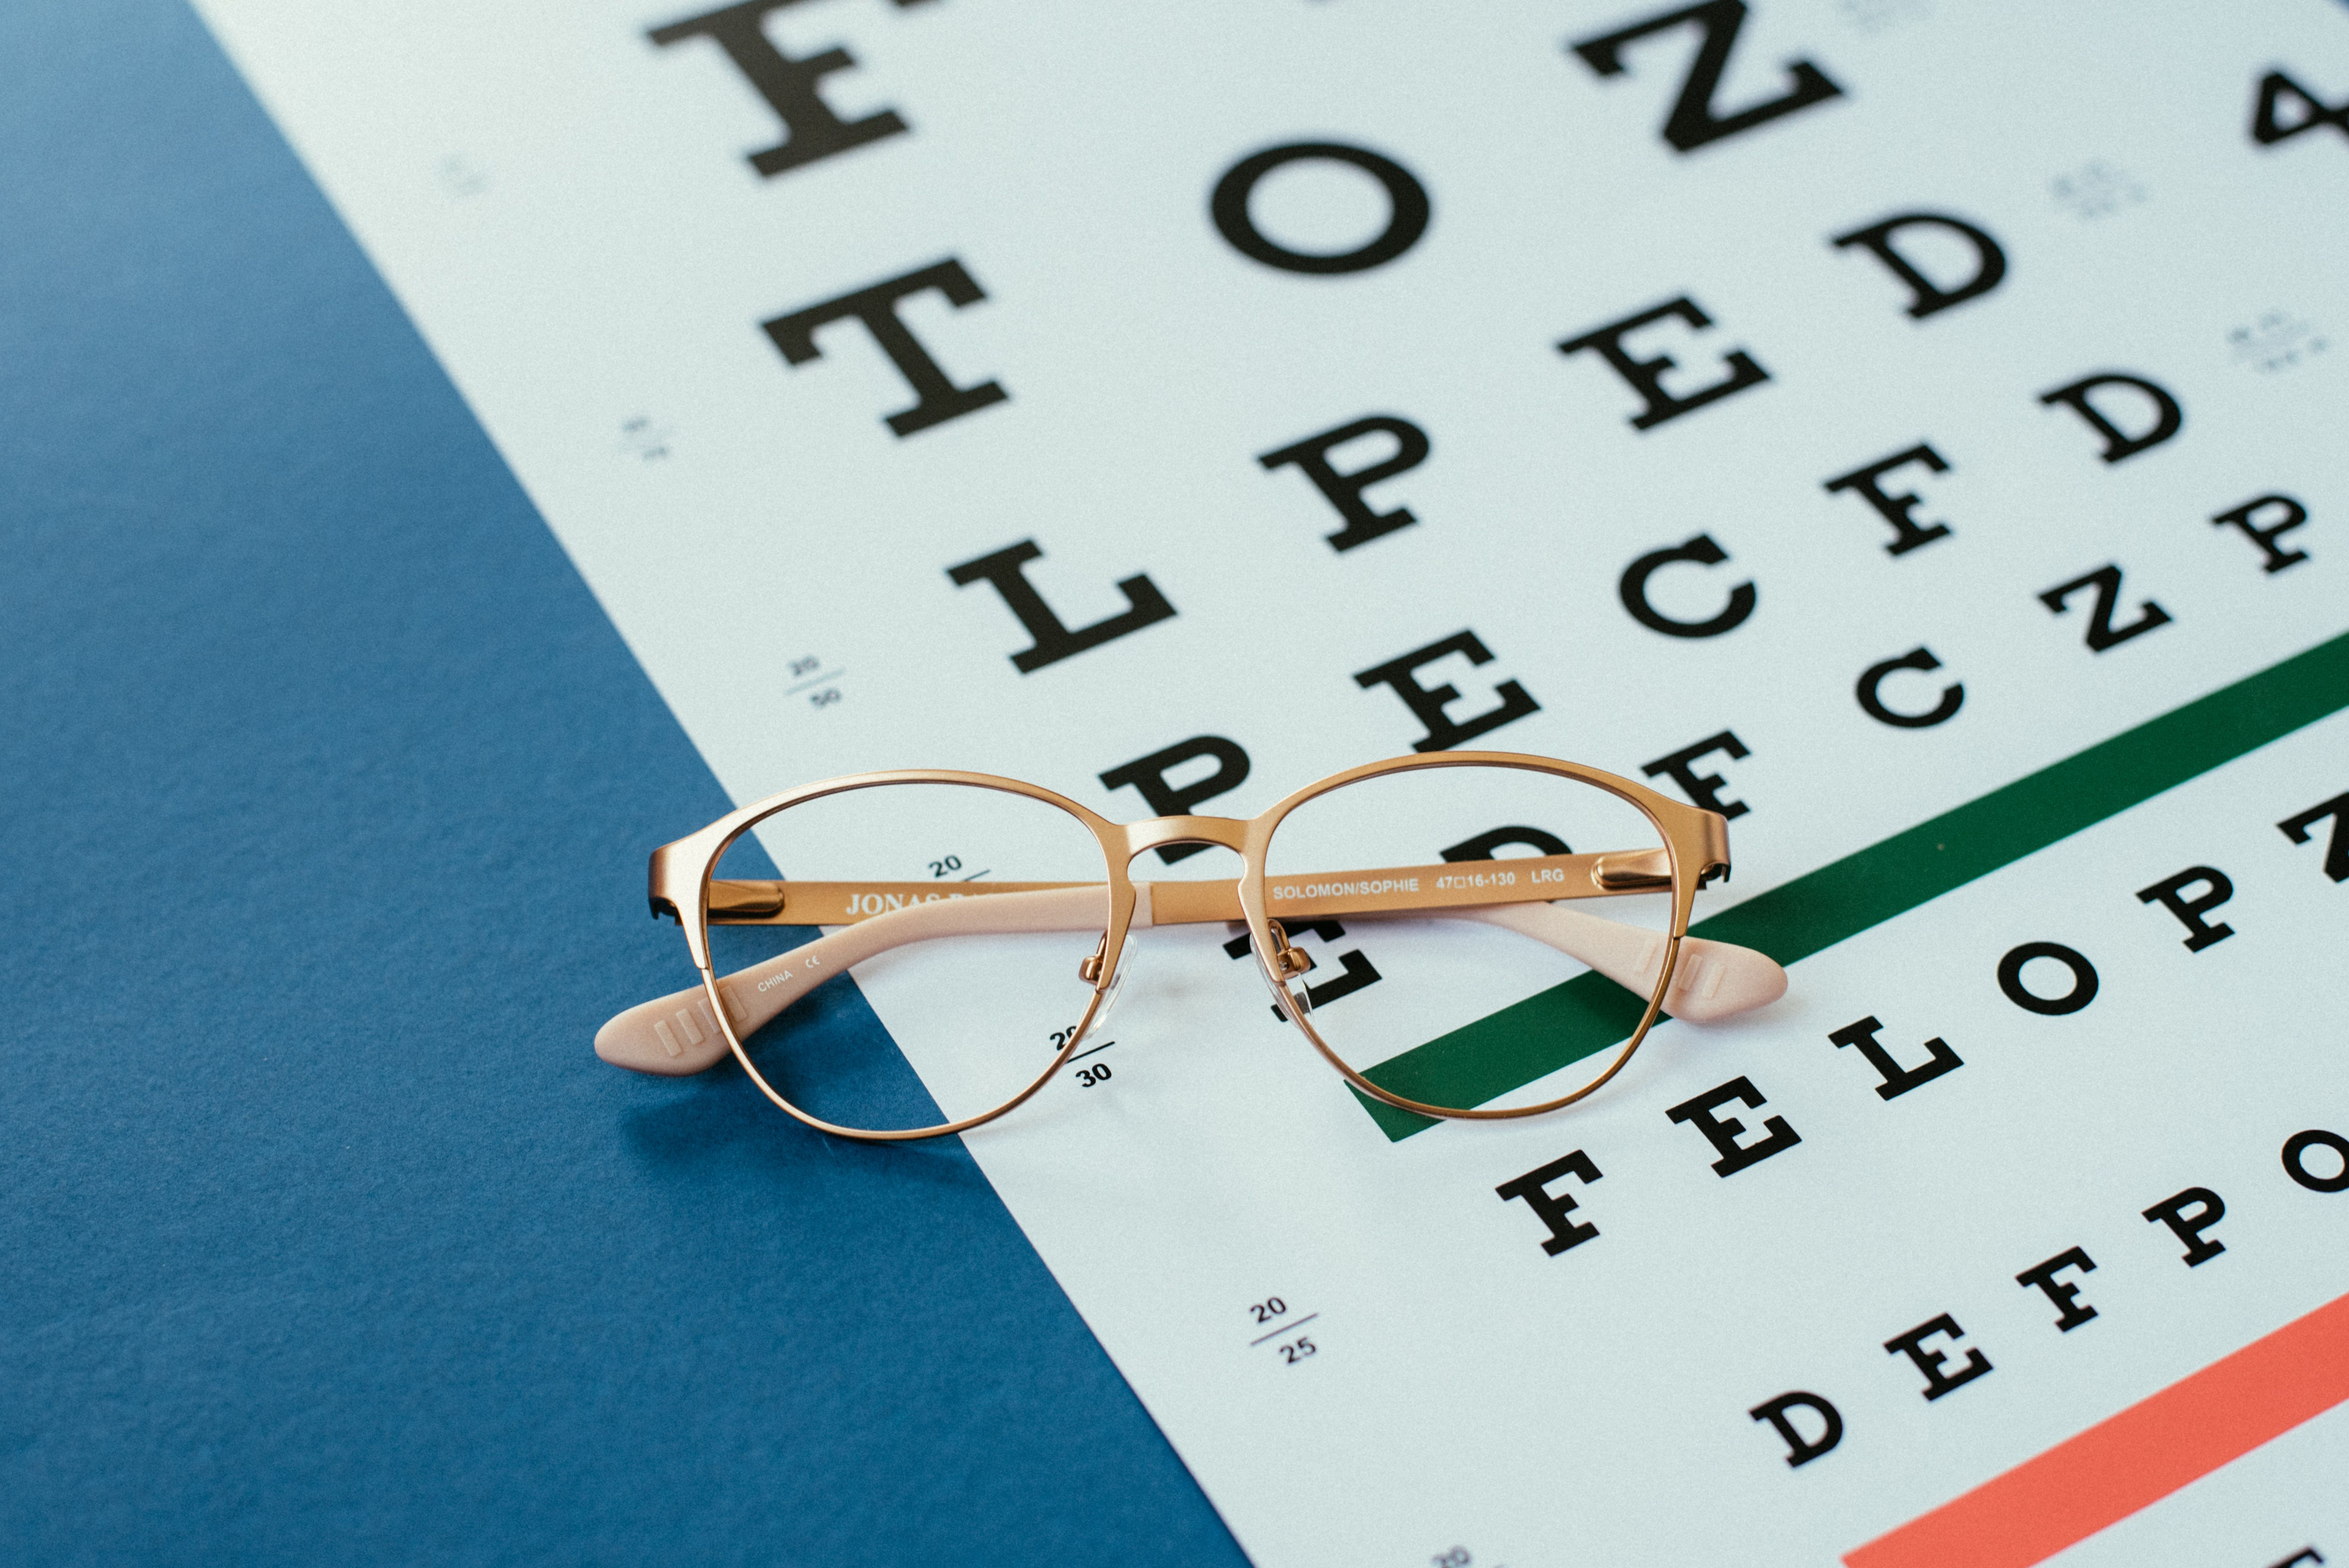 19a685ecf717 Back to school season is coming quickly! Do you have your child's eye exam  scheduled yet? If they need glasses, be sure to check out our cute, stylish  kid's ...